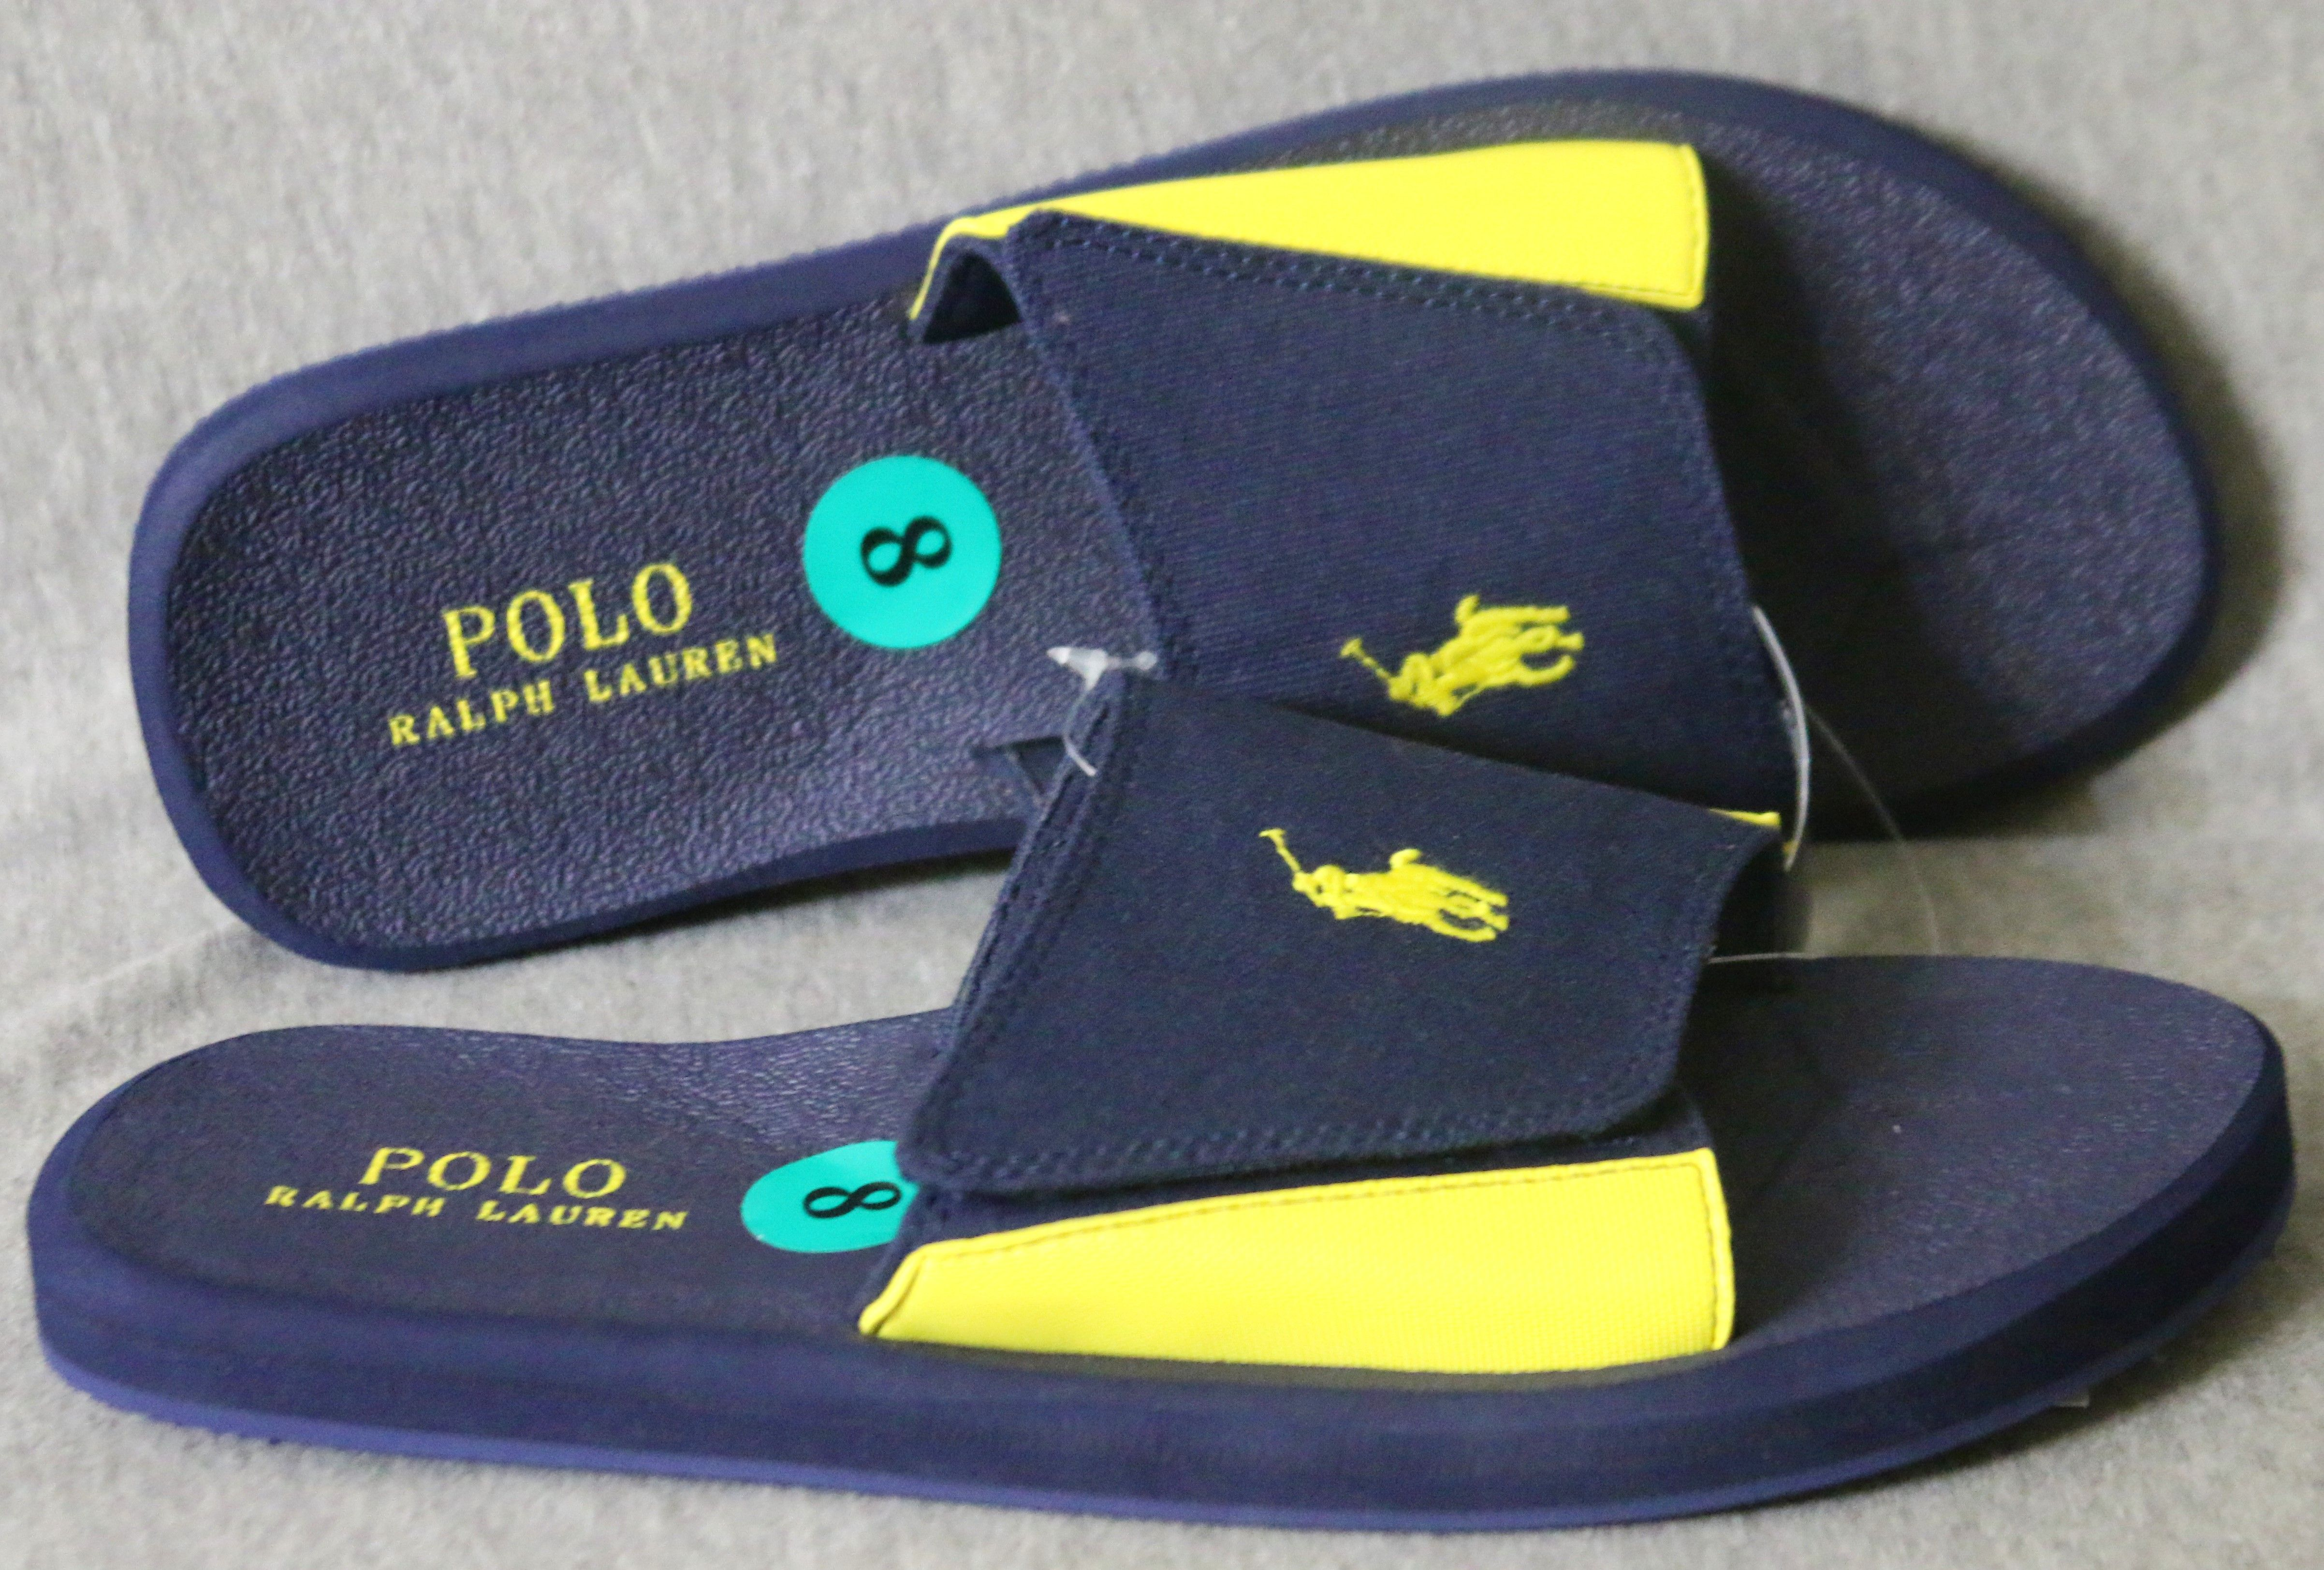 802611f62ed Polo Ralph Lauren Men s Big Pony Logo Flip Flops Sandals Slippers ...